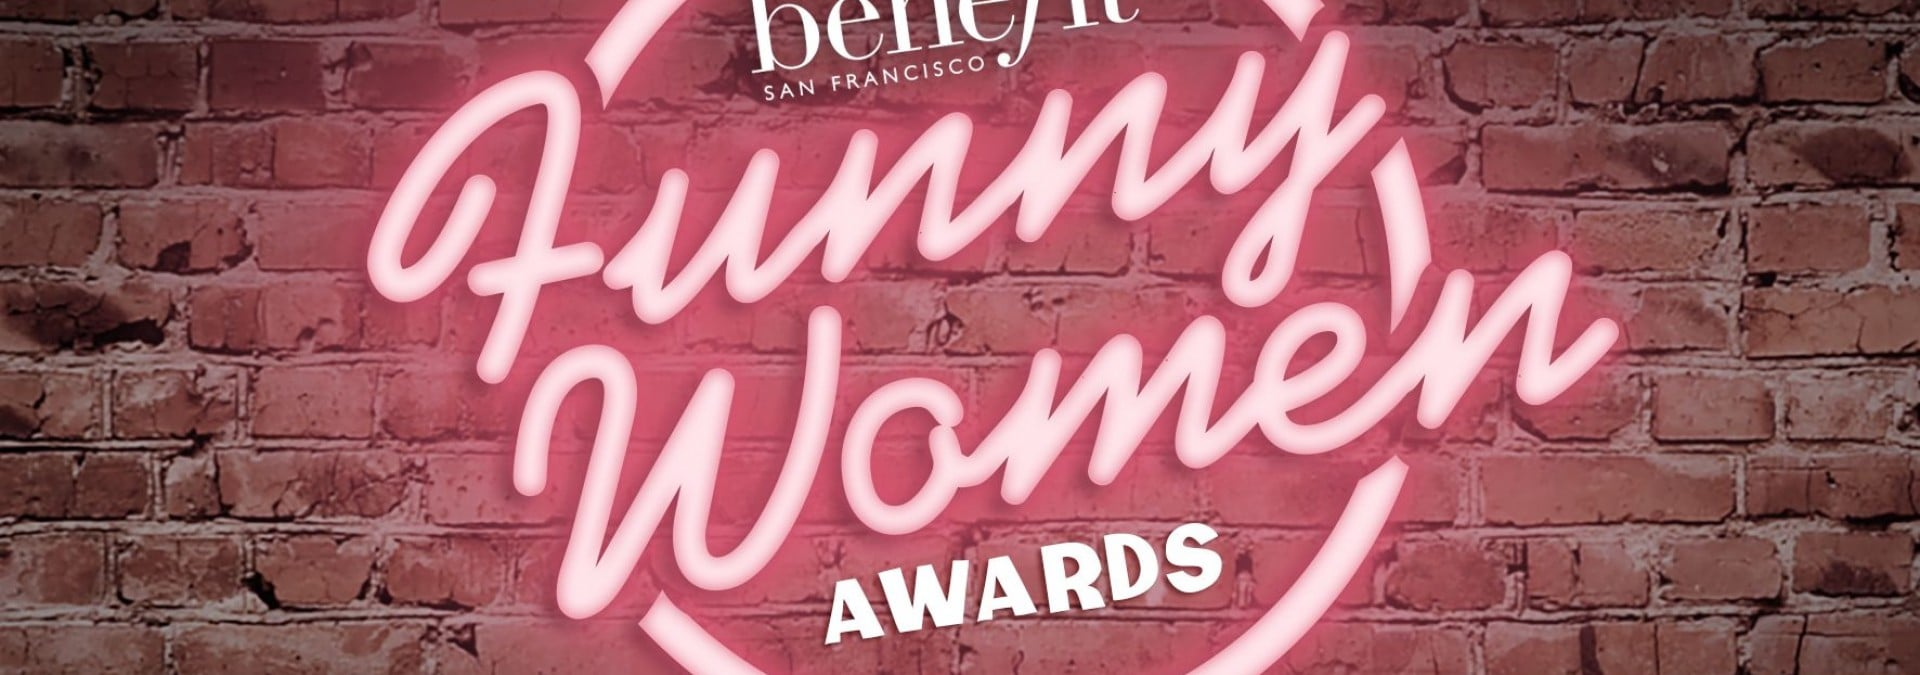 Funny_Women_Awards_and_Benefit_Logo_Neon_Brick_AW